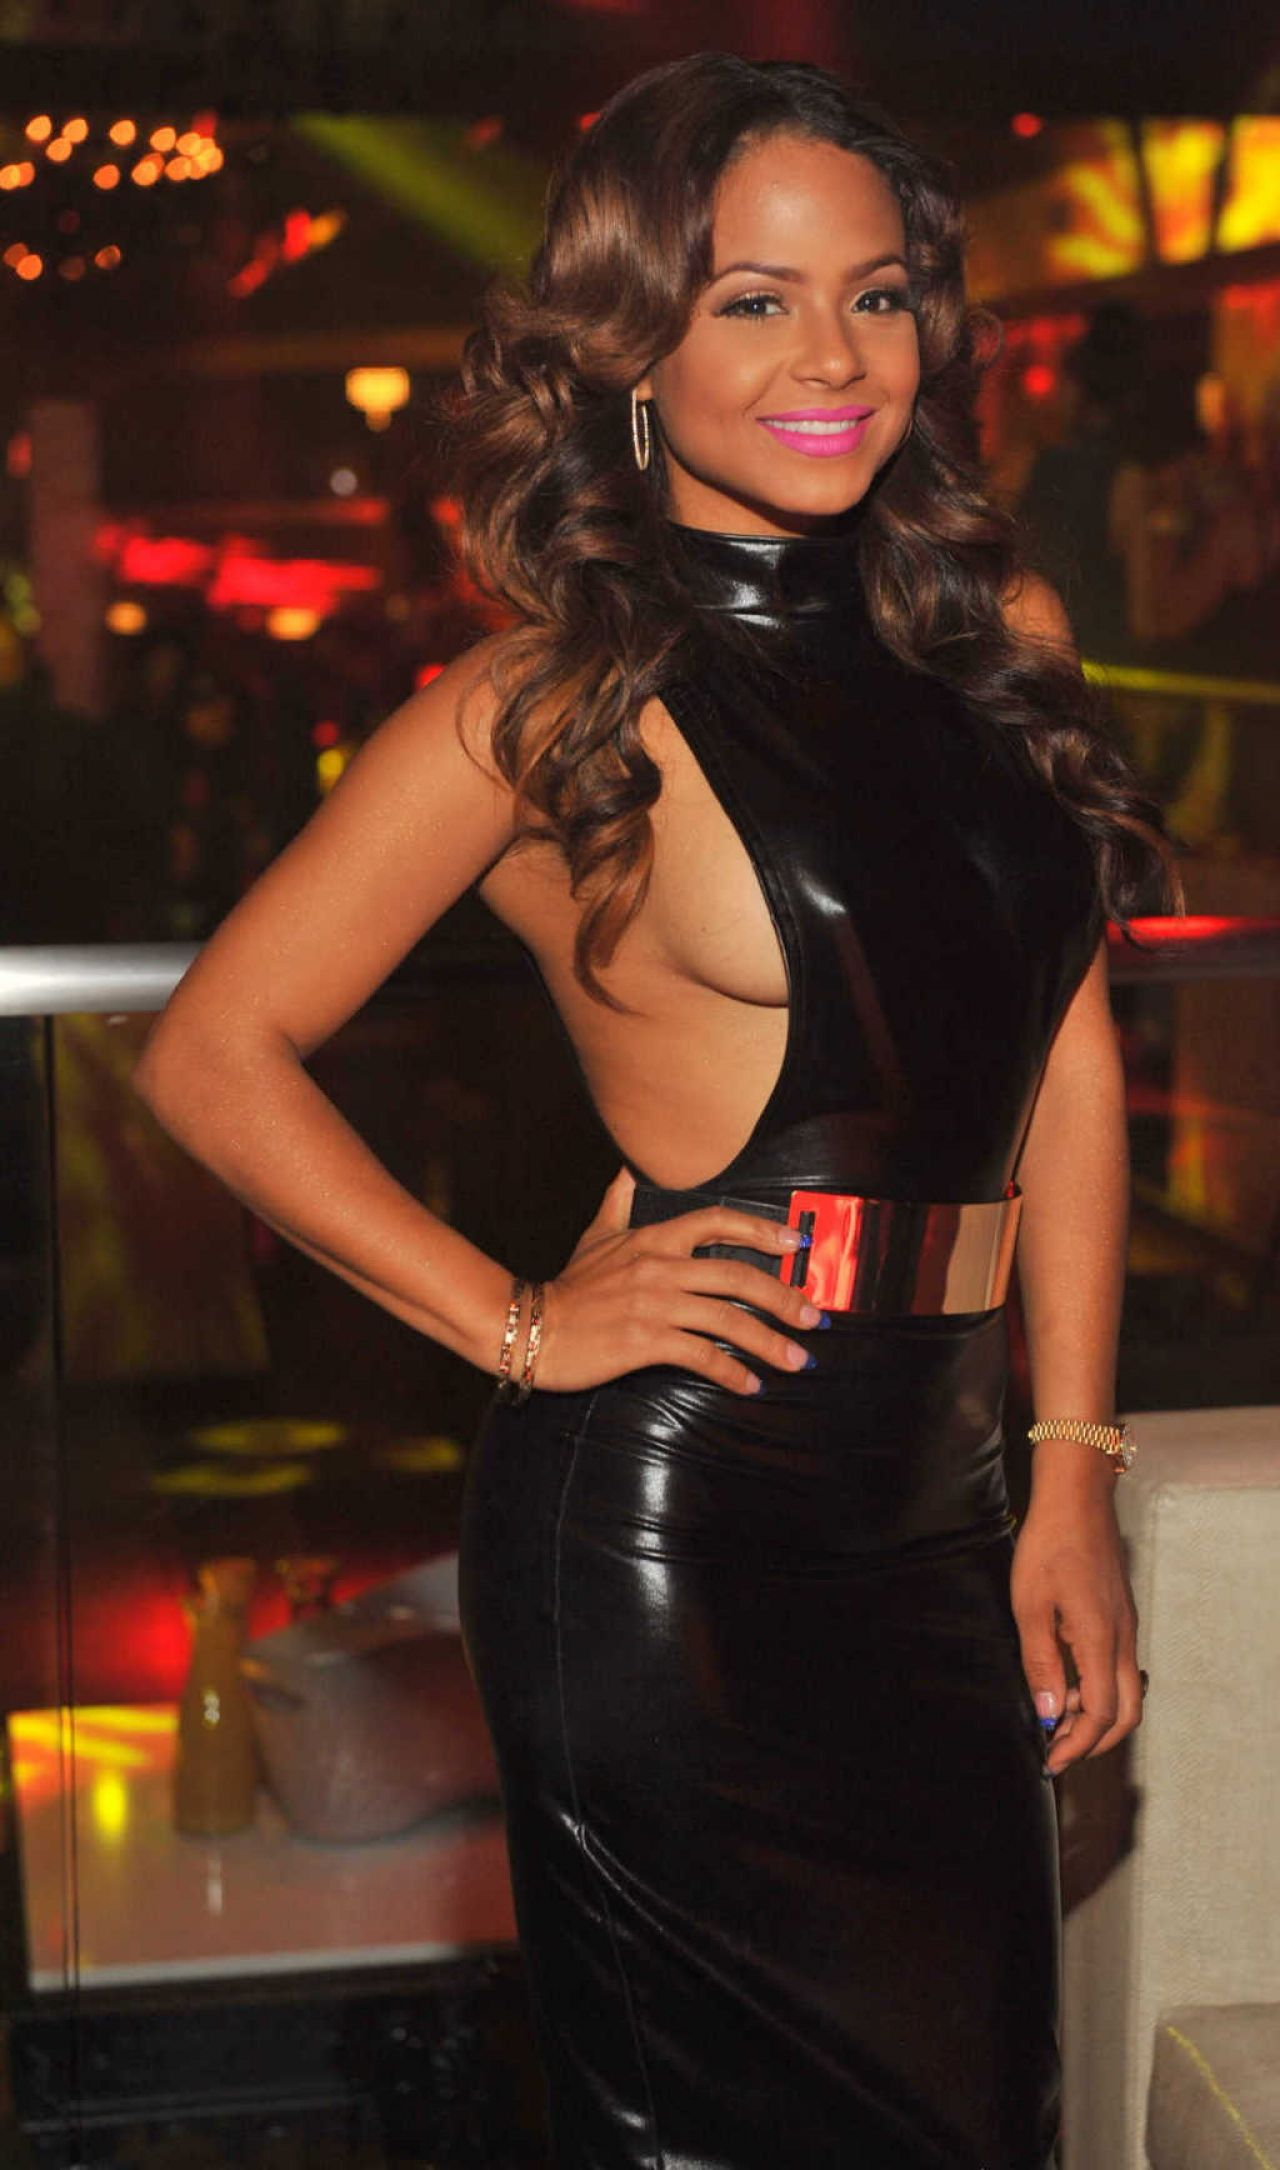 Christina Milian Latest Hot Pics in Black Dress - at Privé Nightclub in Atlanta